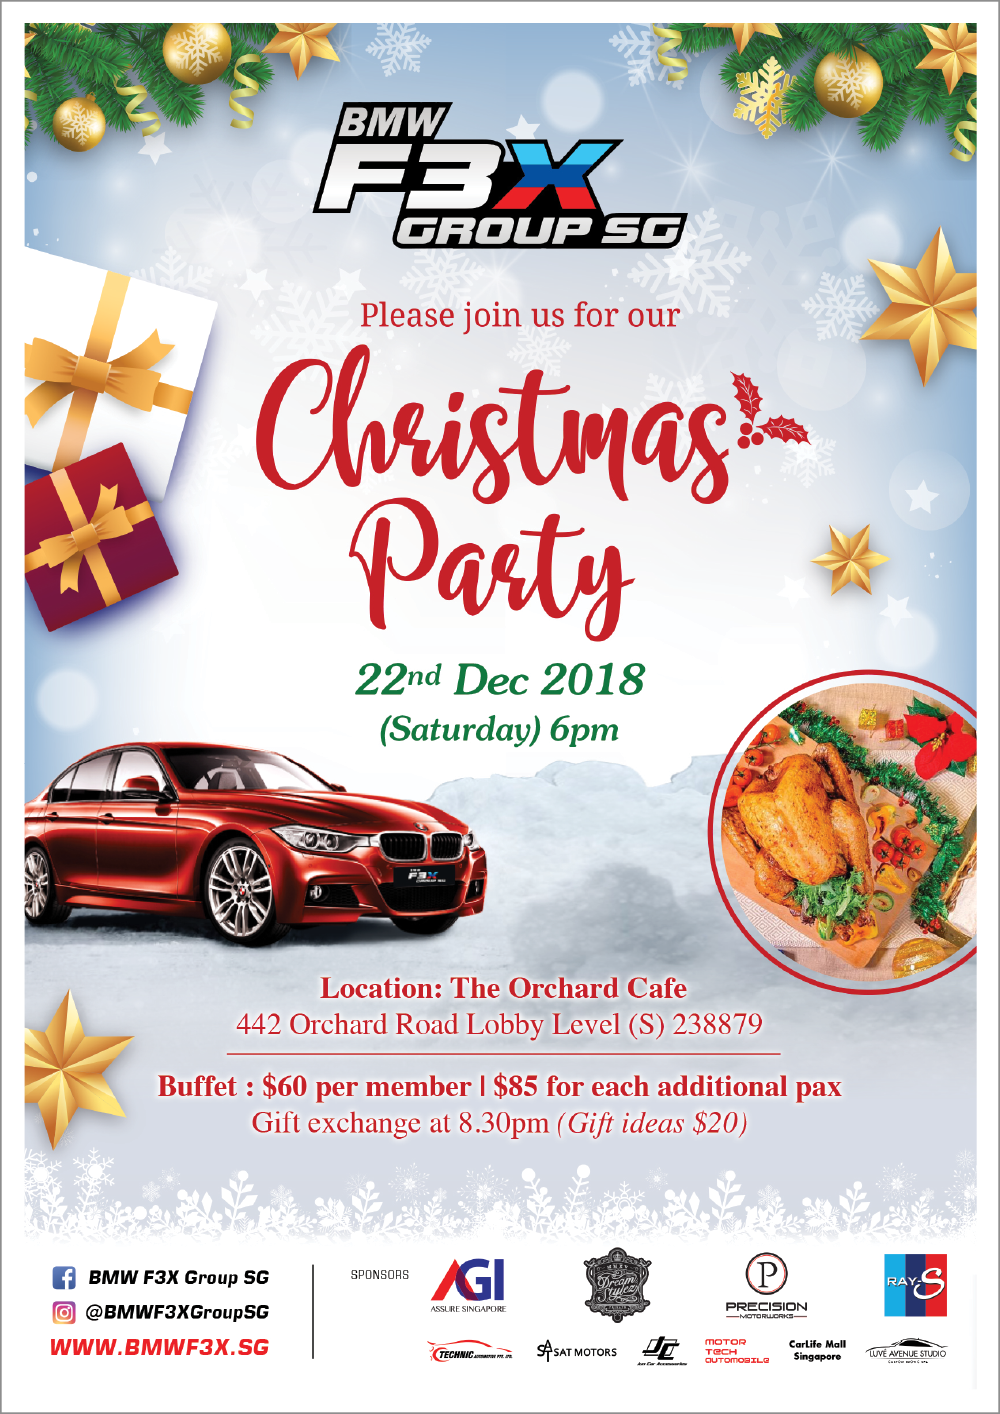 //bmwcarclub.sg/wp-content/uploads/2019/10/BMW-F3X-Xmas-2018-Poster.png